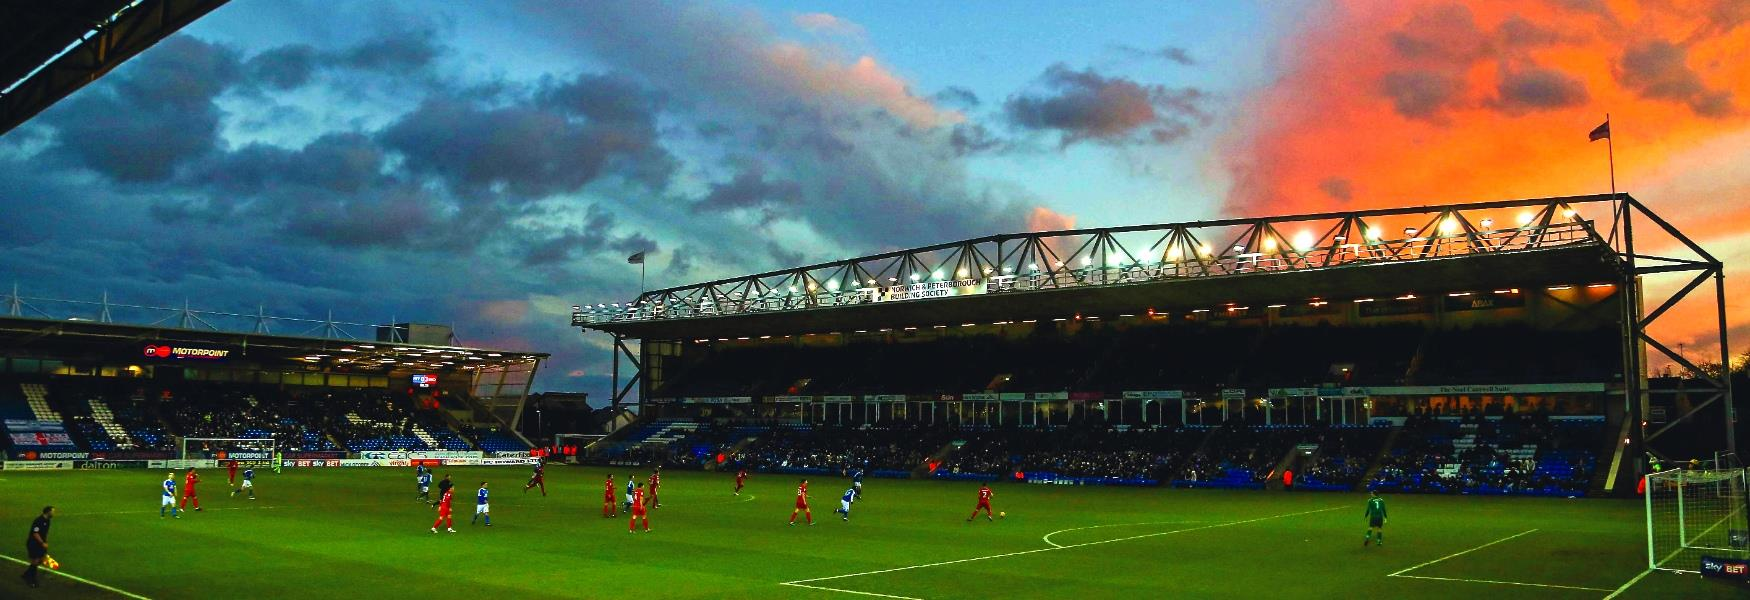 Image of a football match being played at London Road Football Stadium.